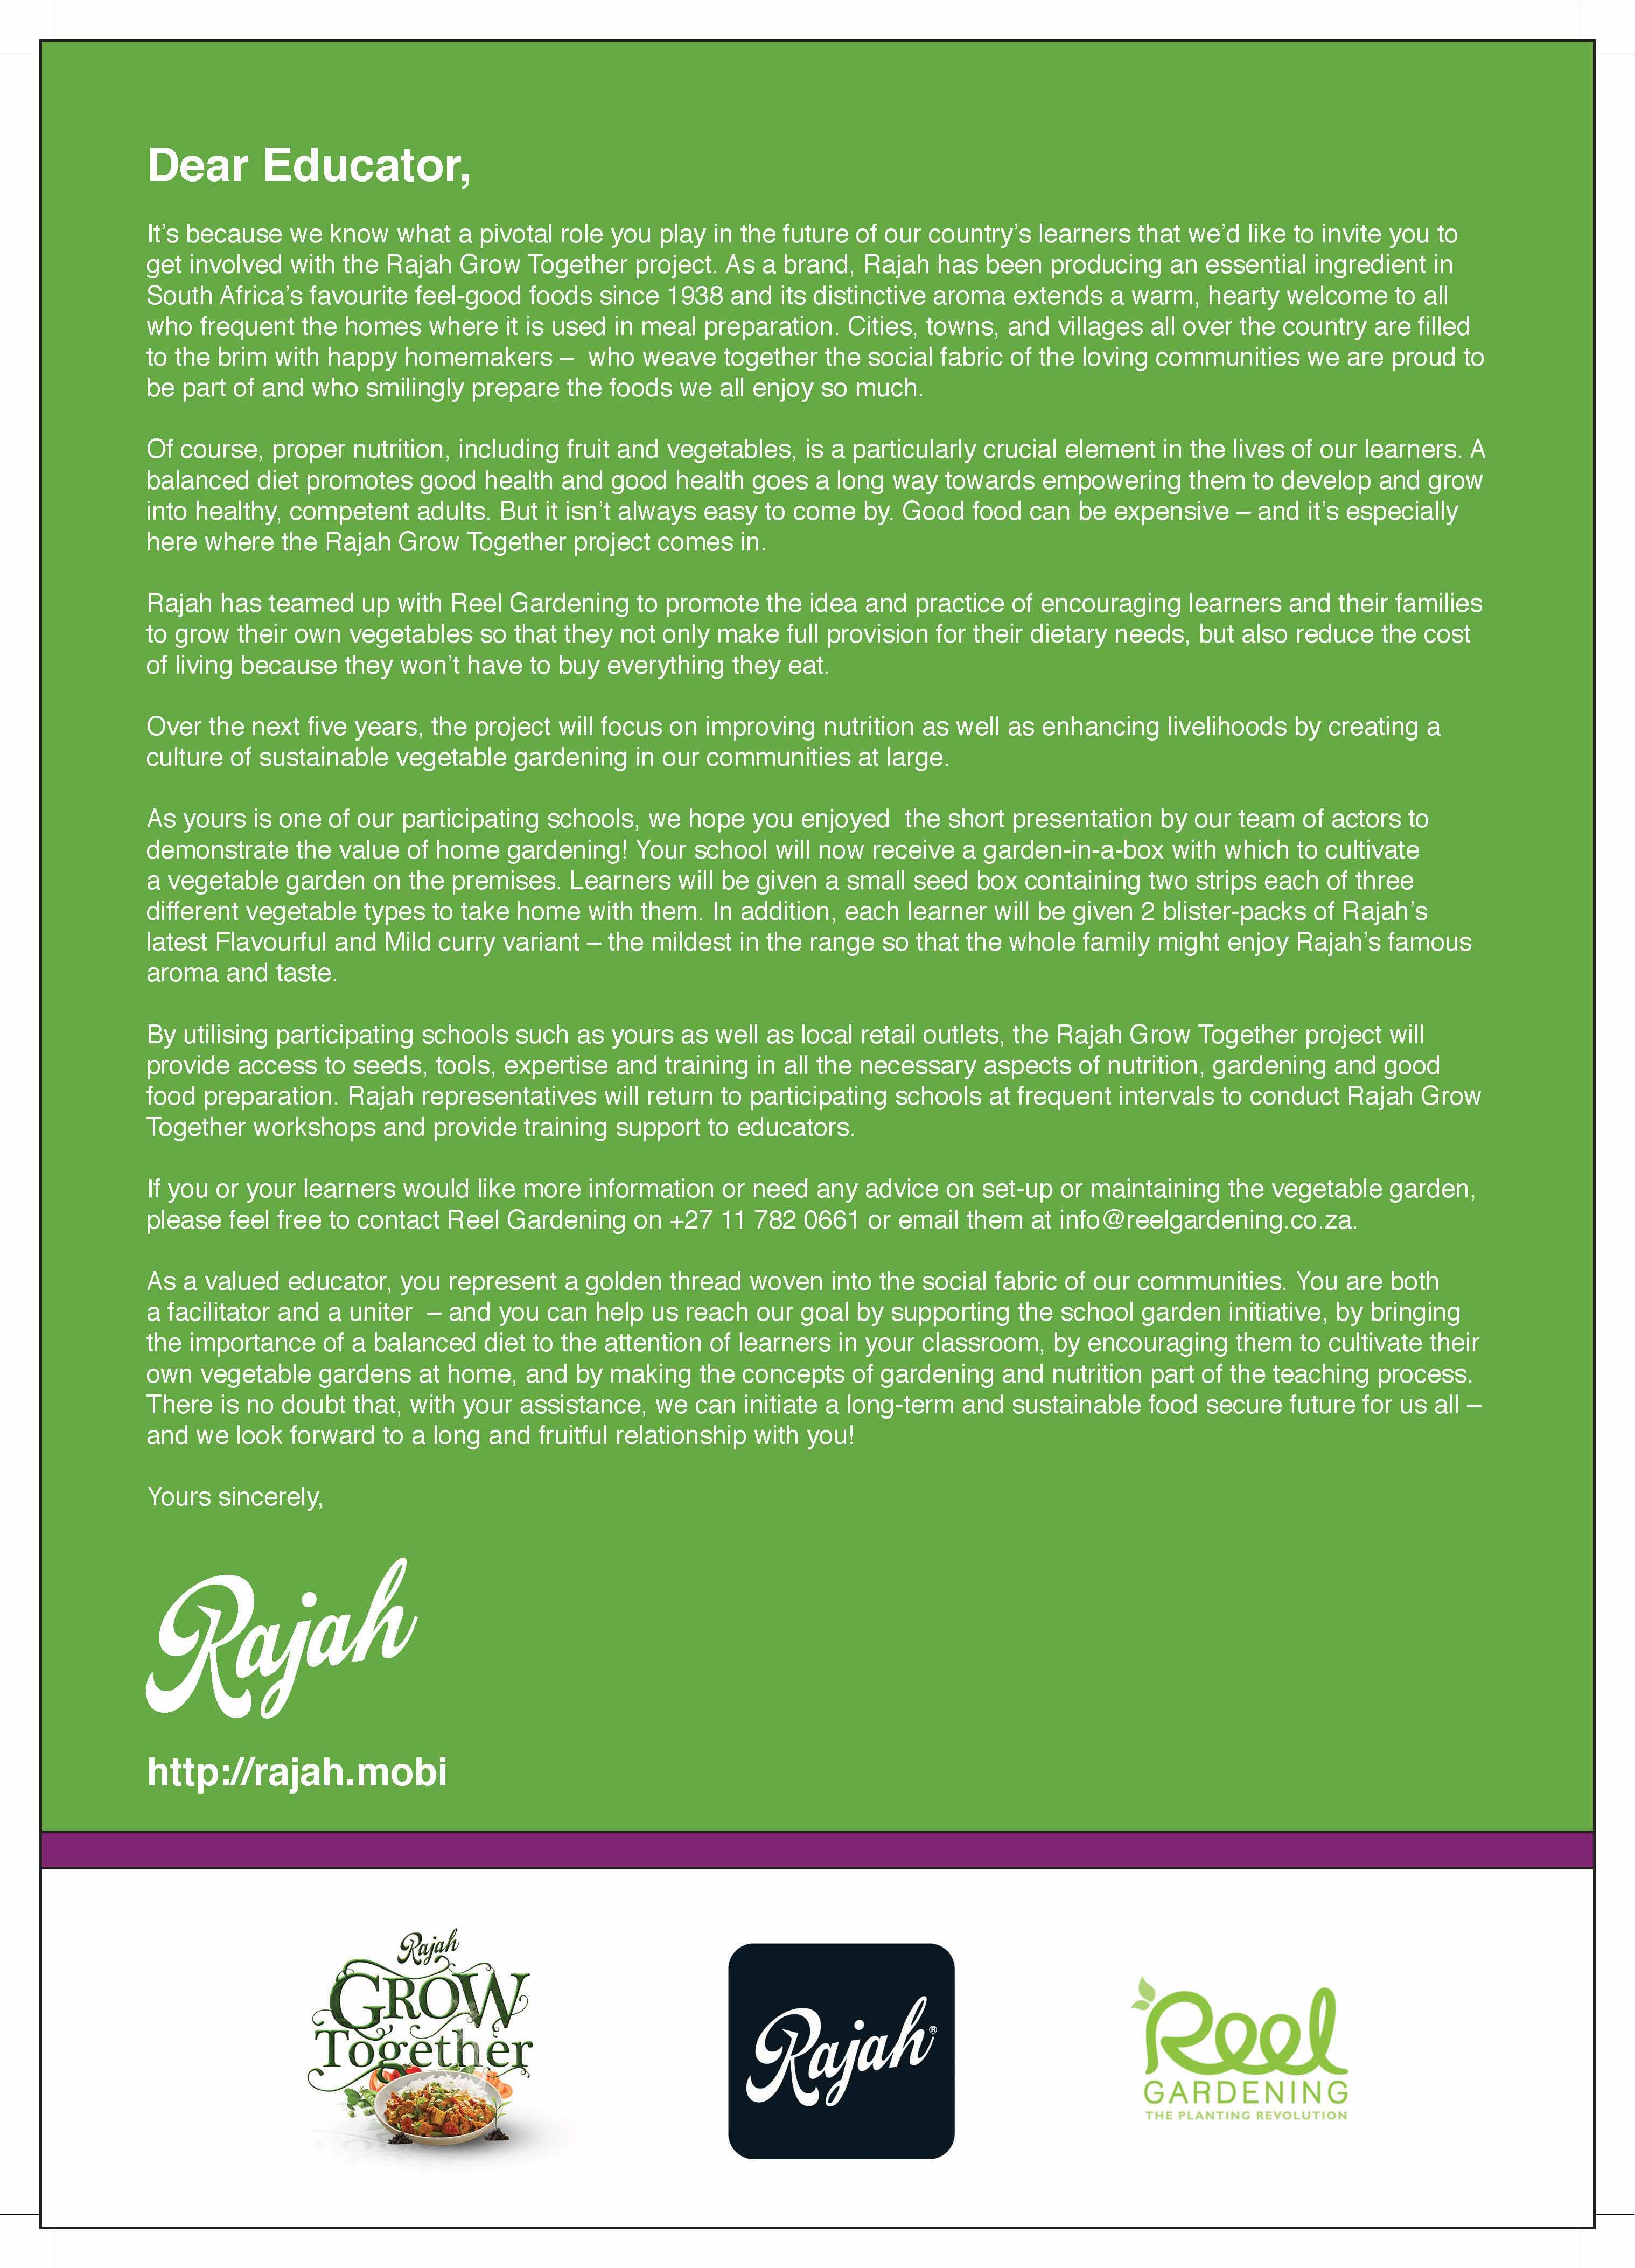 RAJAH: Letter to Educator - Page 1